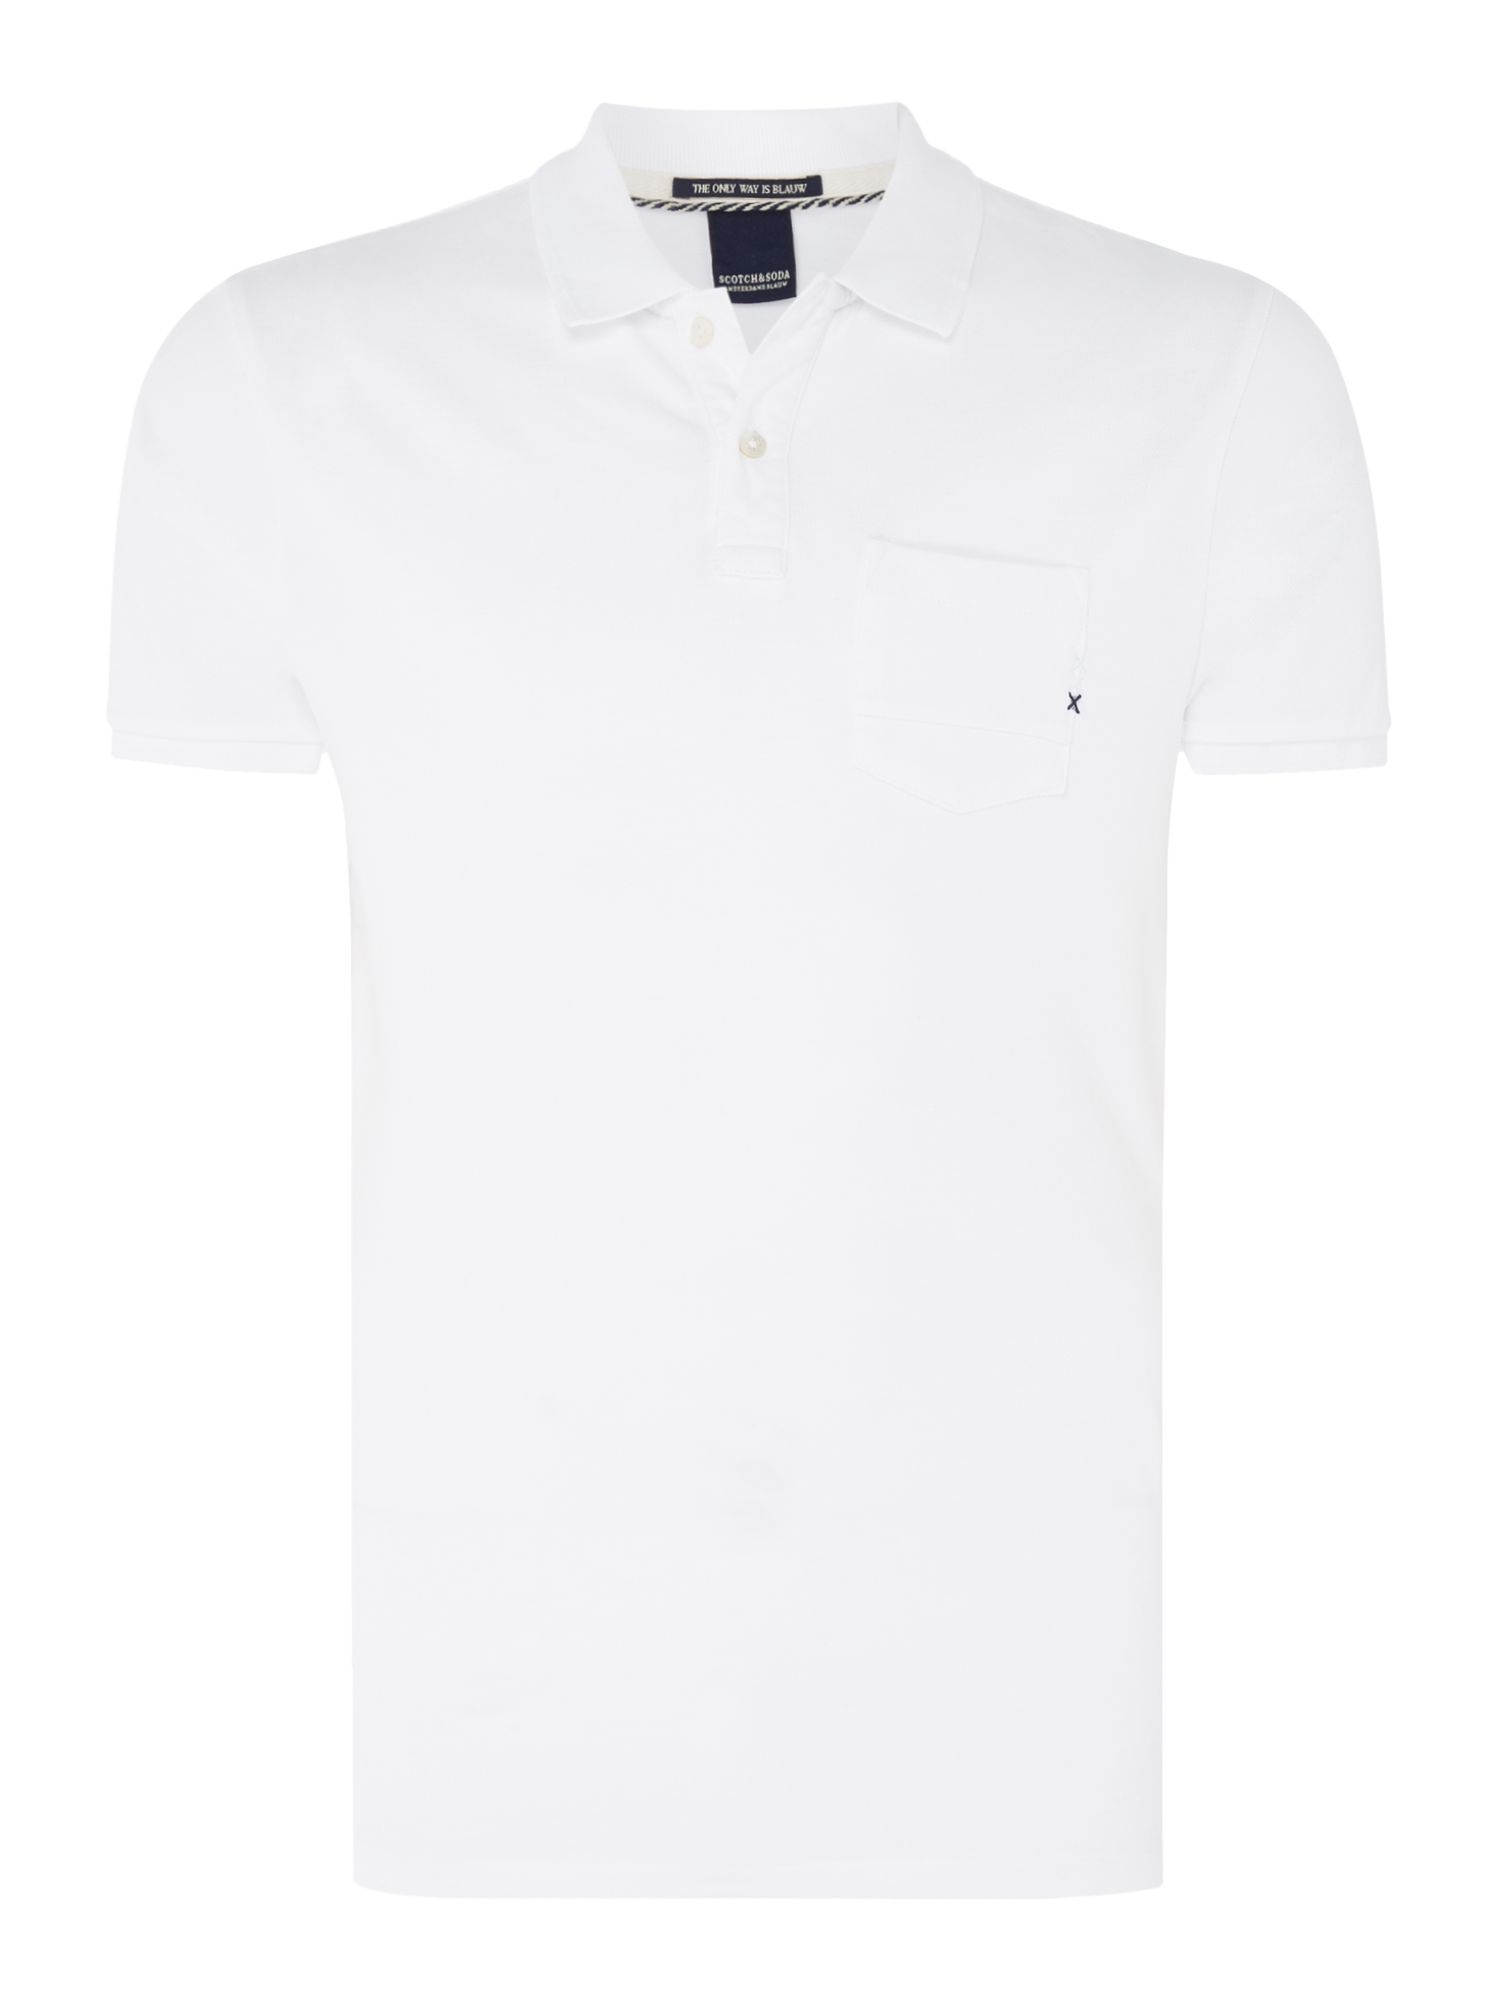 Men's Scotch & Soda Garment Dyed Polo, White